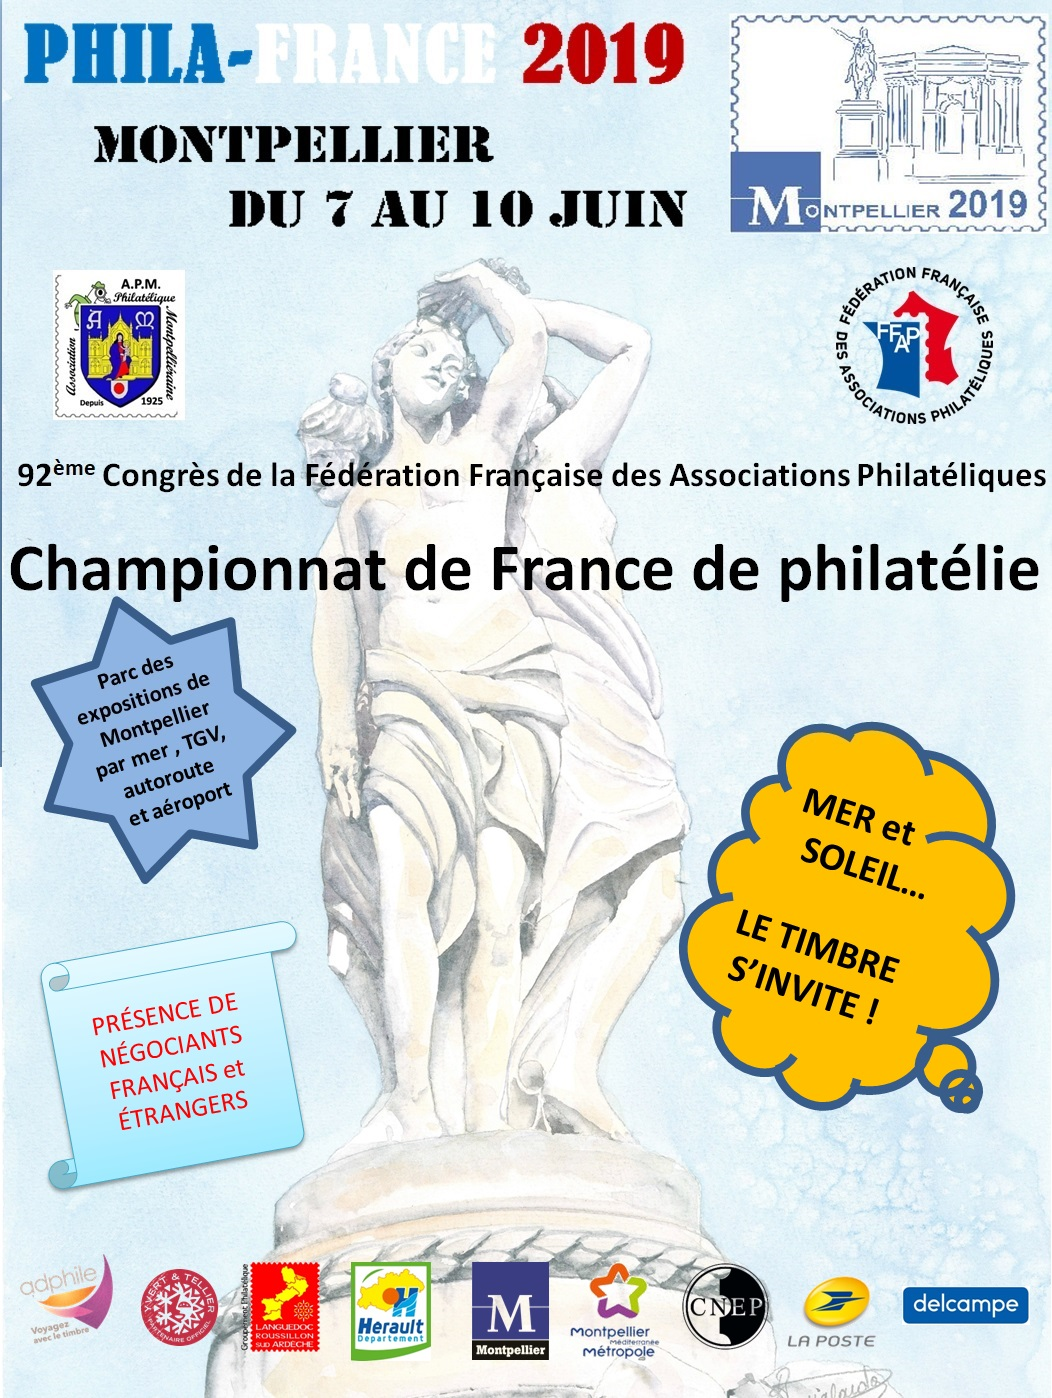 Flyer Montpellier 2019